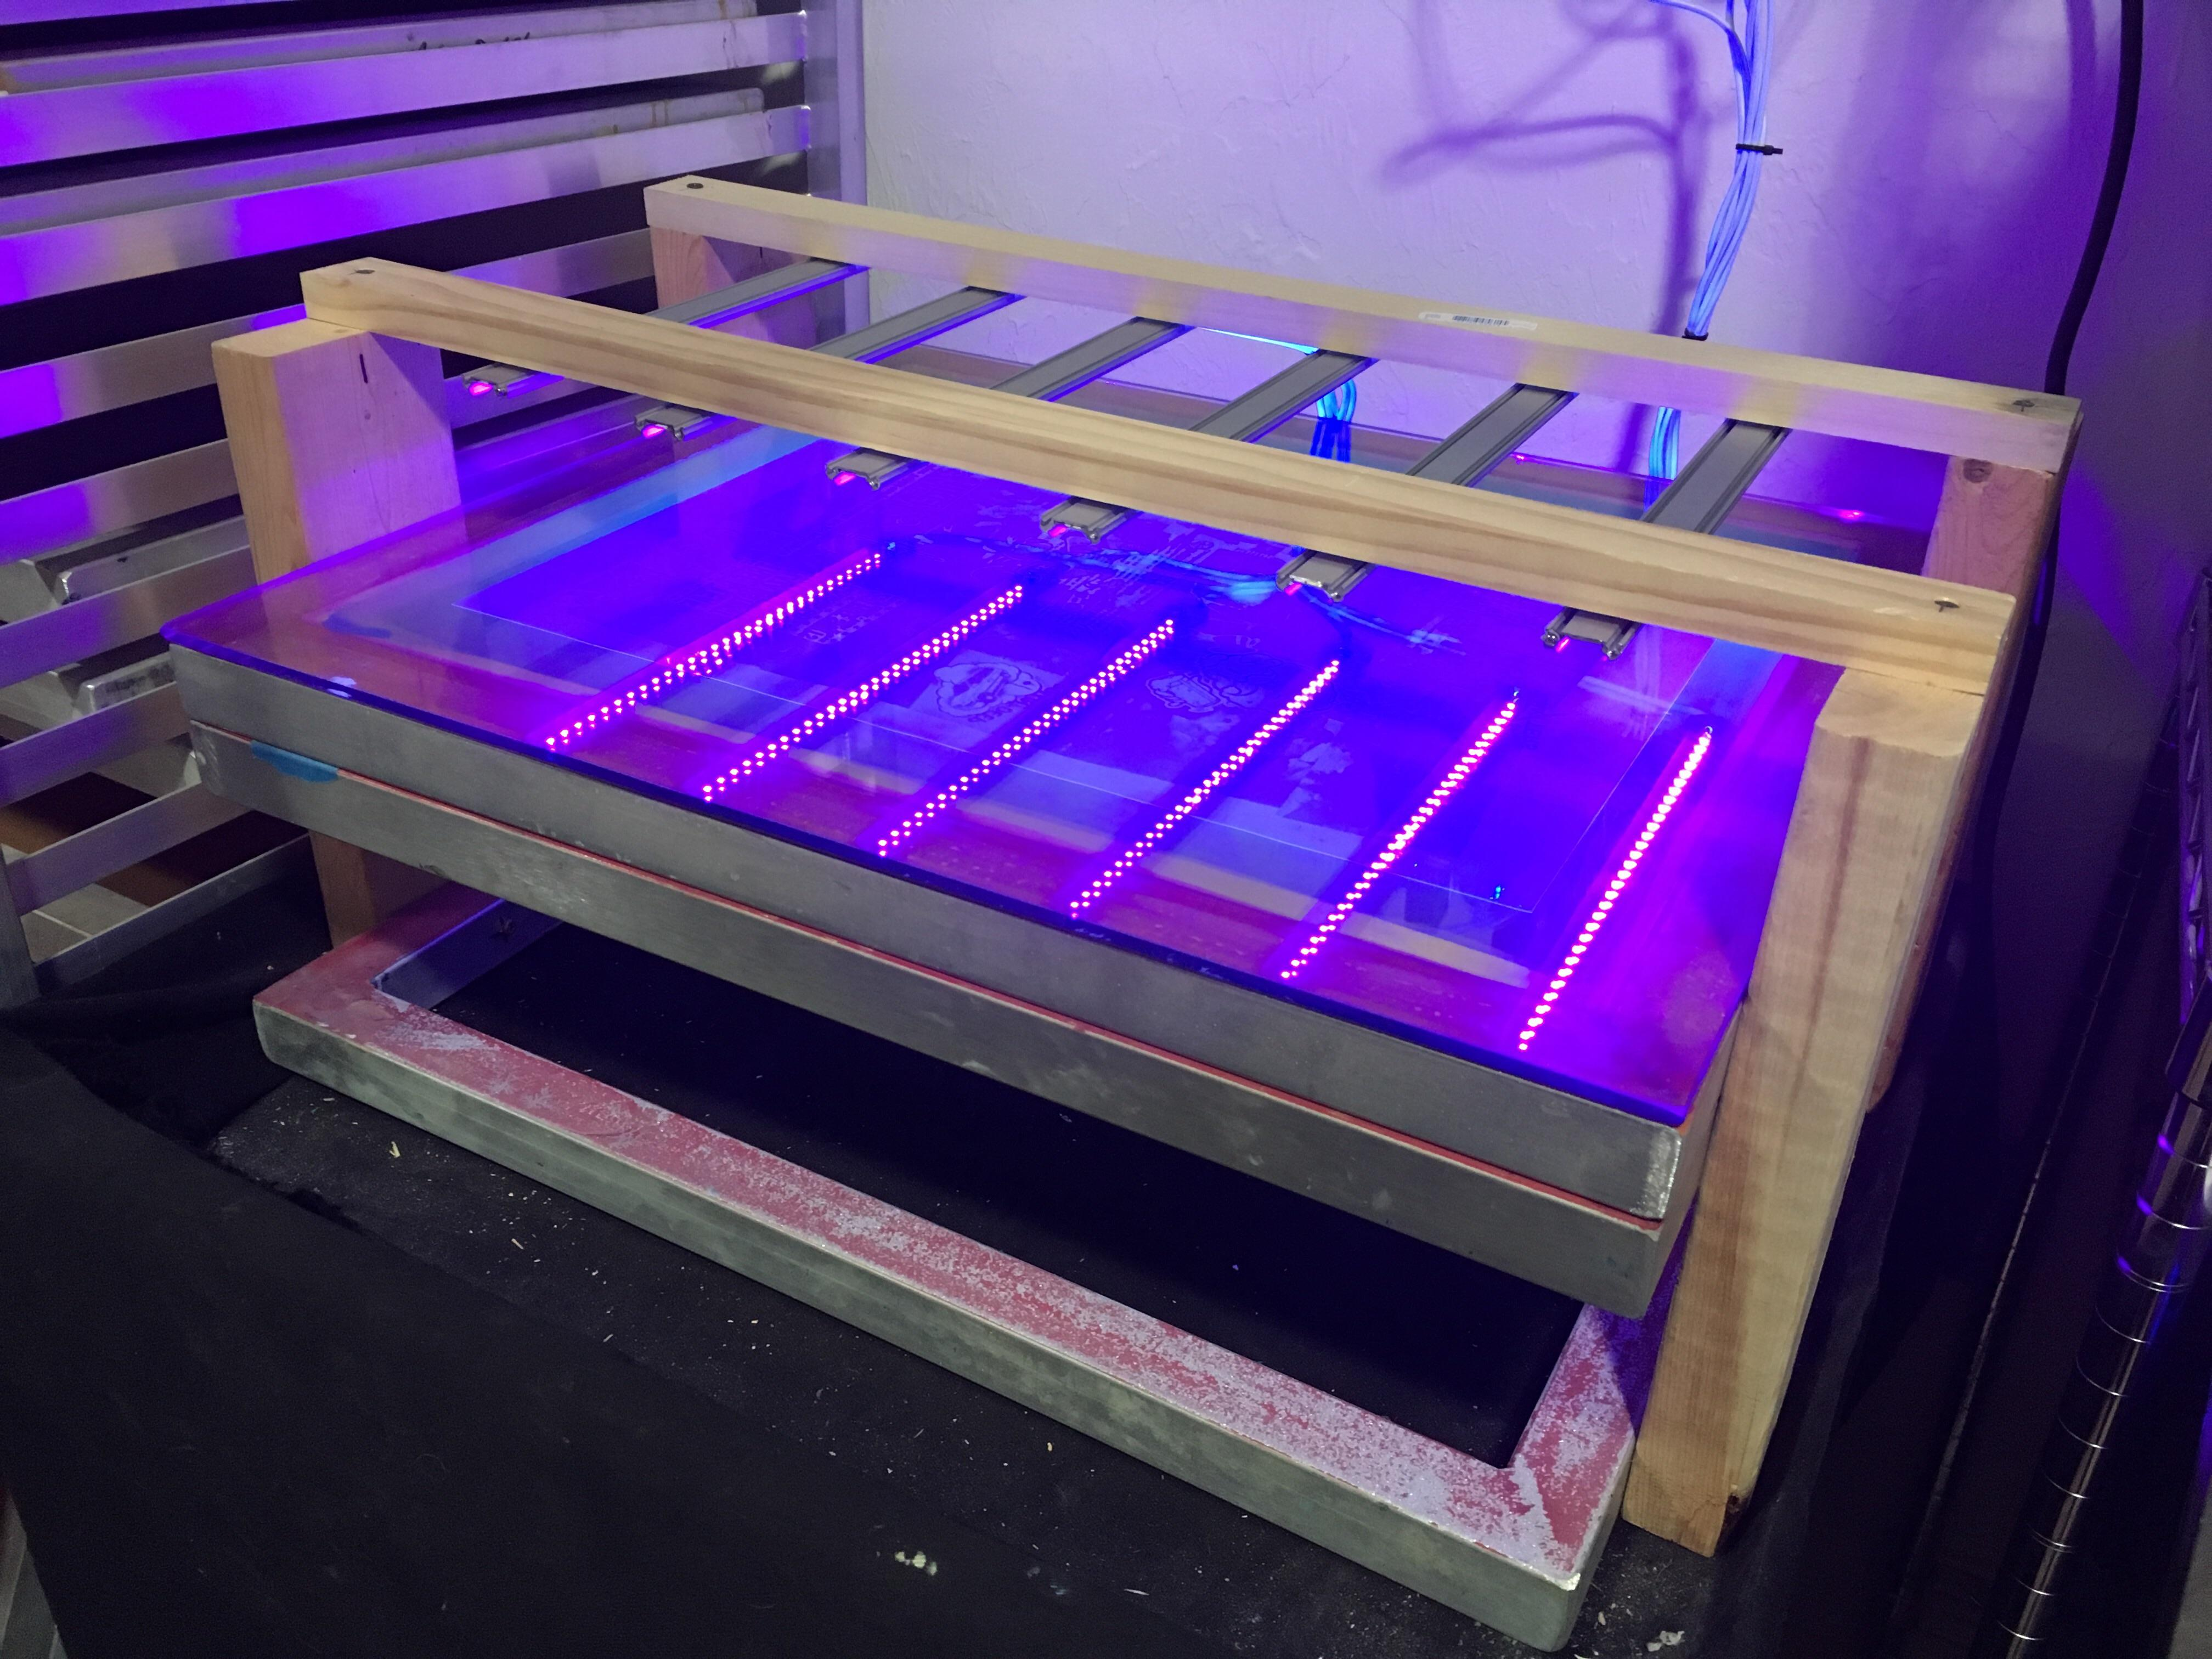 My Diy Exposure Unit Built Out Of Old Screen Frames And Cheap Leds 1 Minute Exposure Under 100 Screenprinting